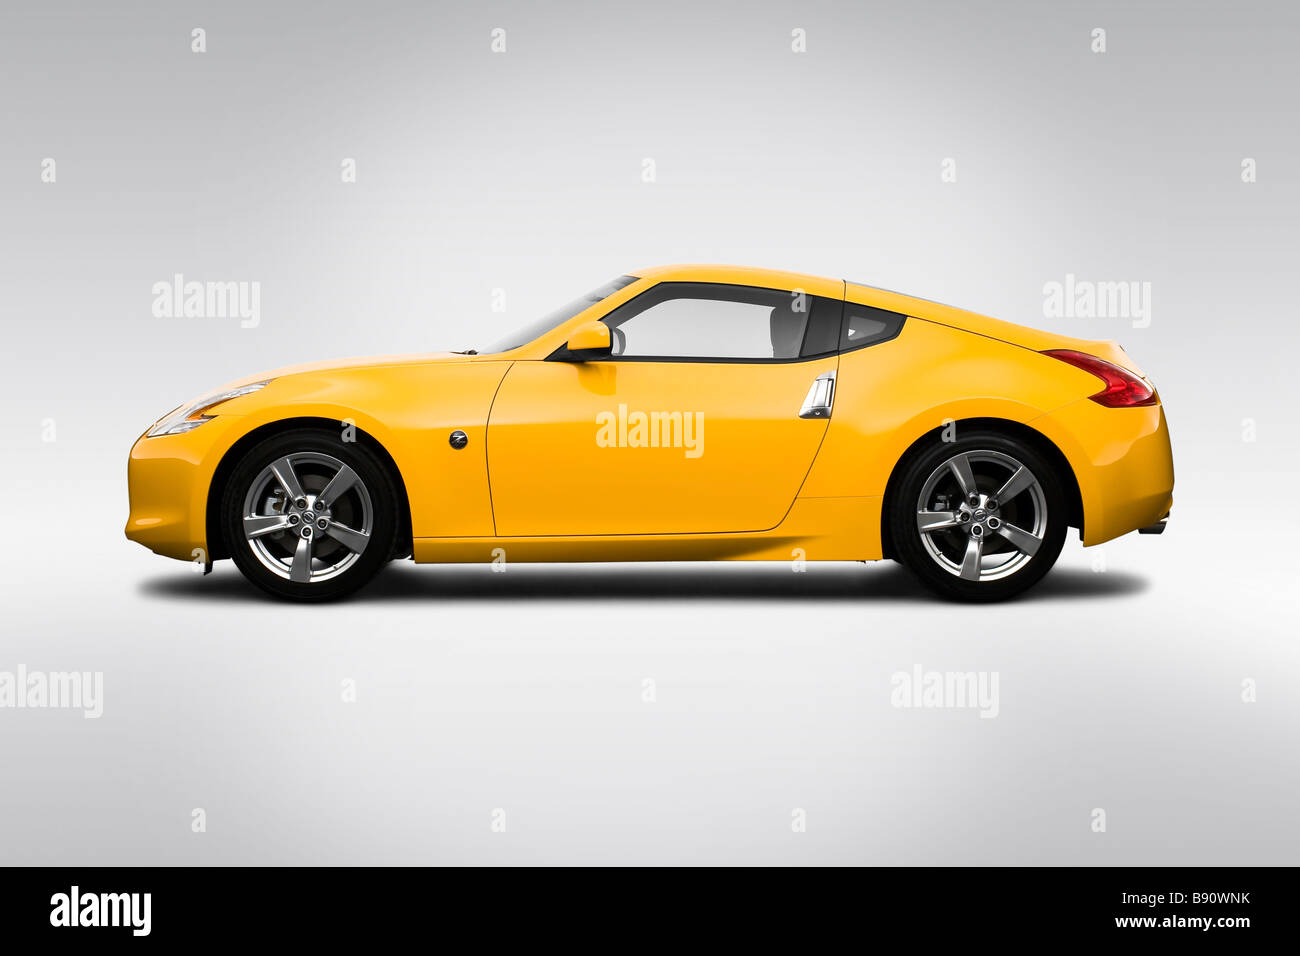 2009 Nissan 370Z In Yellow   Drivers Side Profile   Stock Image